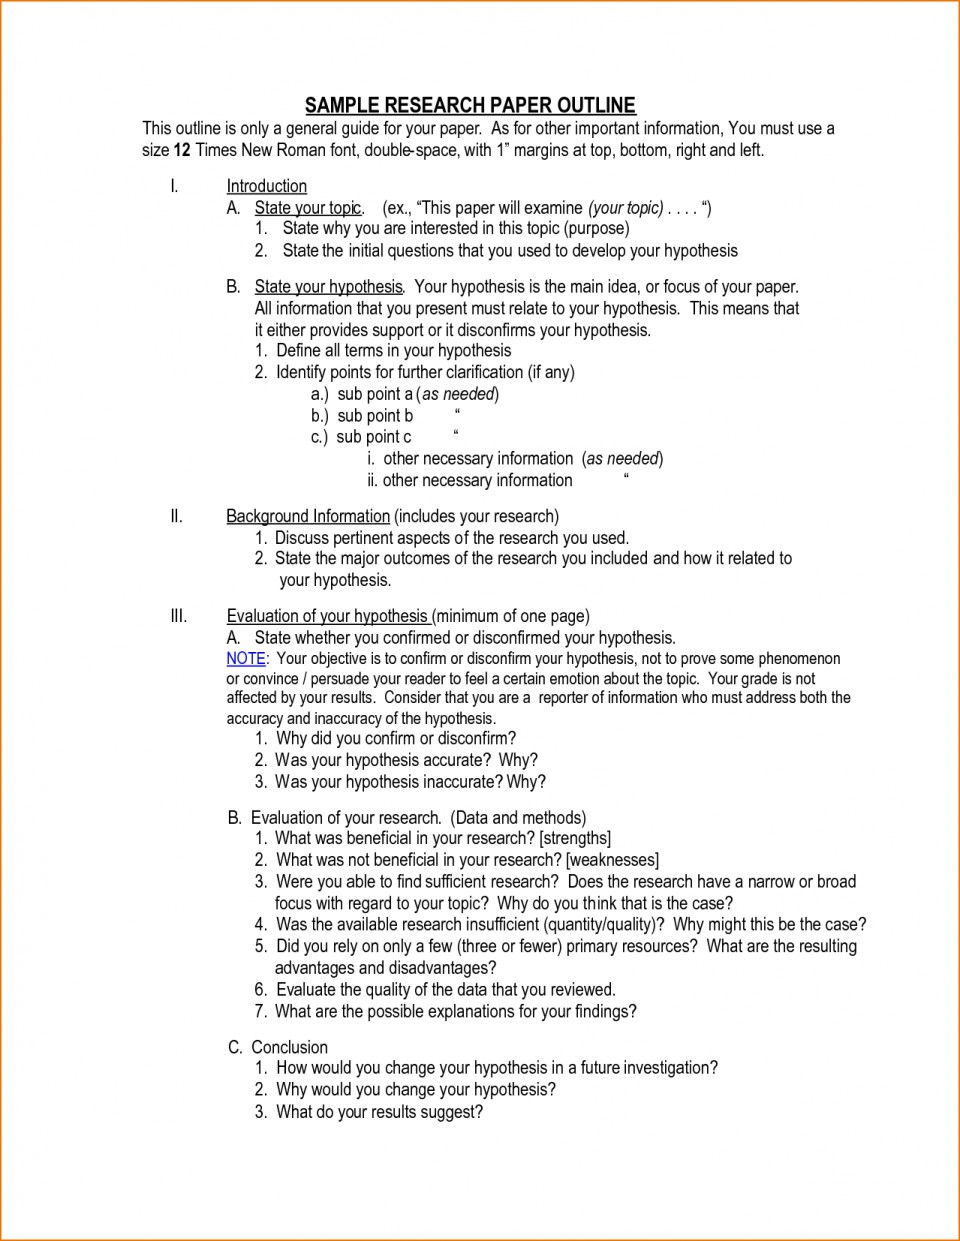 012 Research Paper Outline Template For Outlines Top A Mla On Social Media 960